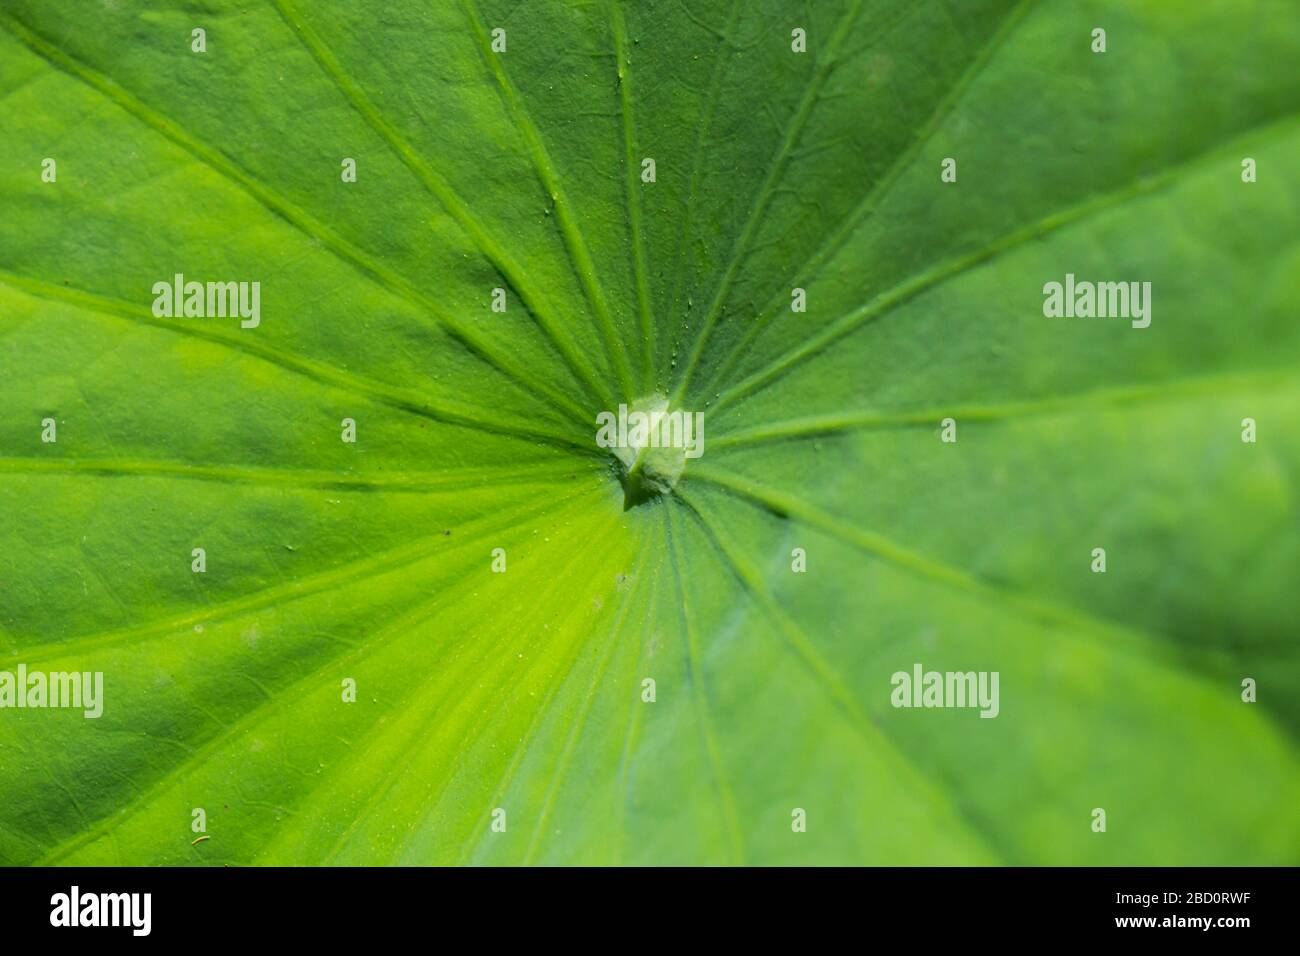 Pretty blue lotus flower or water lily blooming in a pond above the large flat green floating lily pads or leaves on the surface of the water Stock Photo